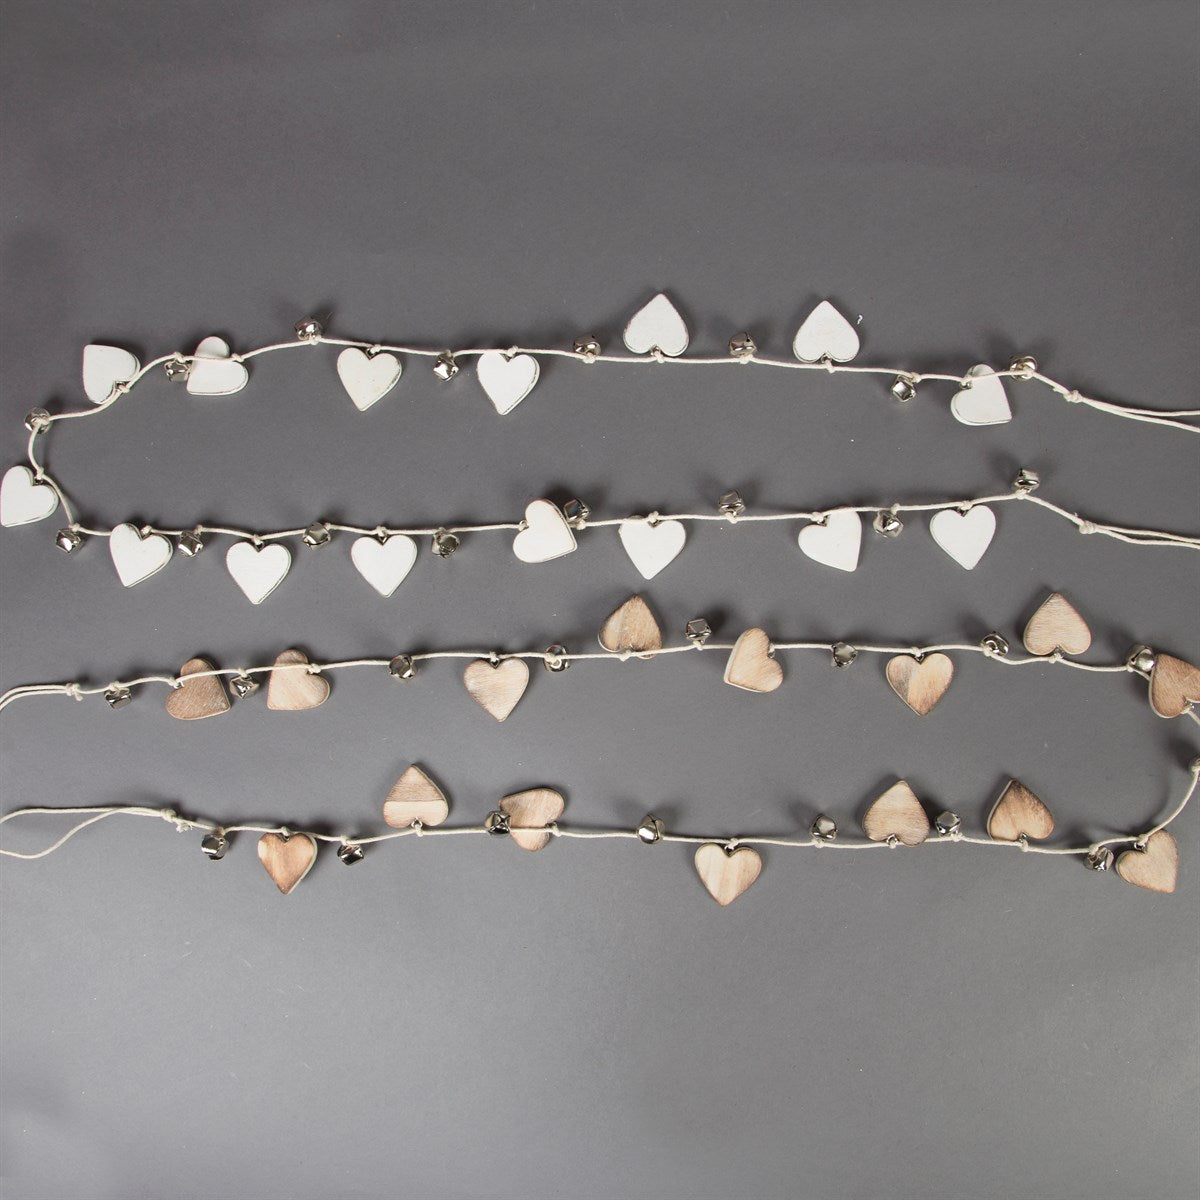 Rustic Heart Garland - Dales Country Interiors